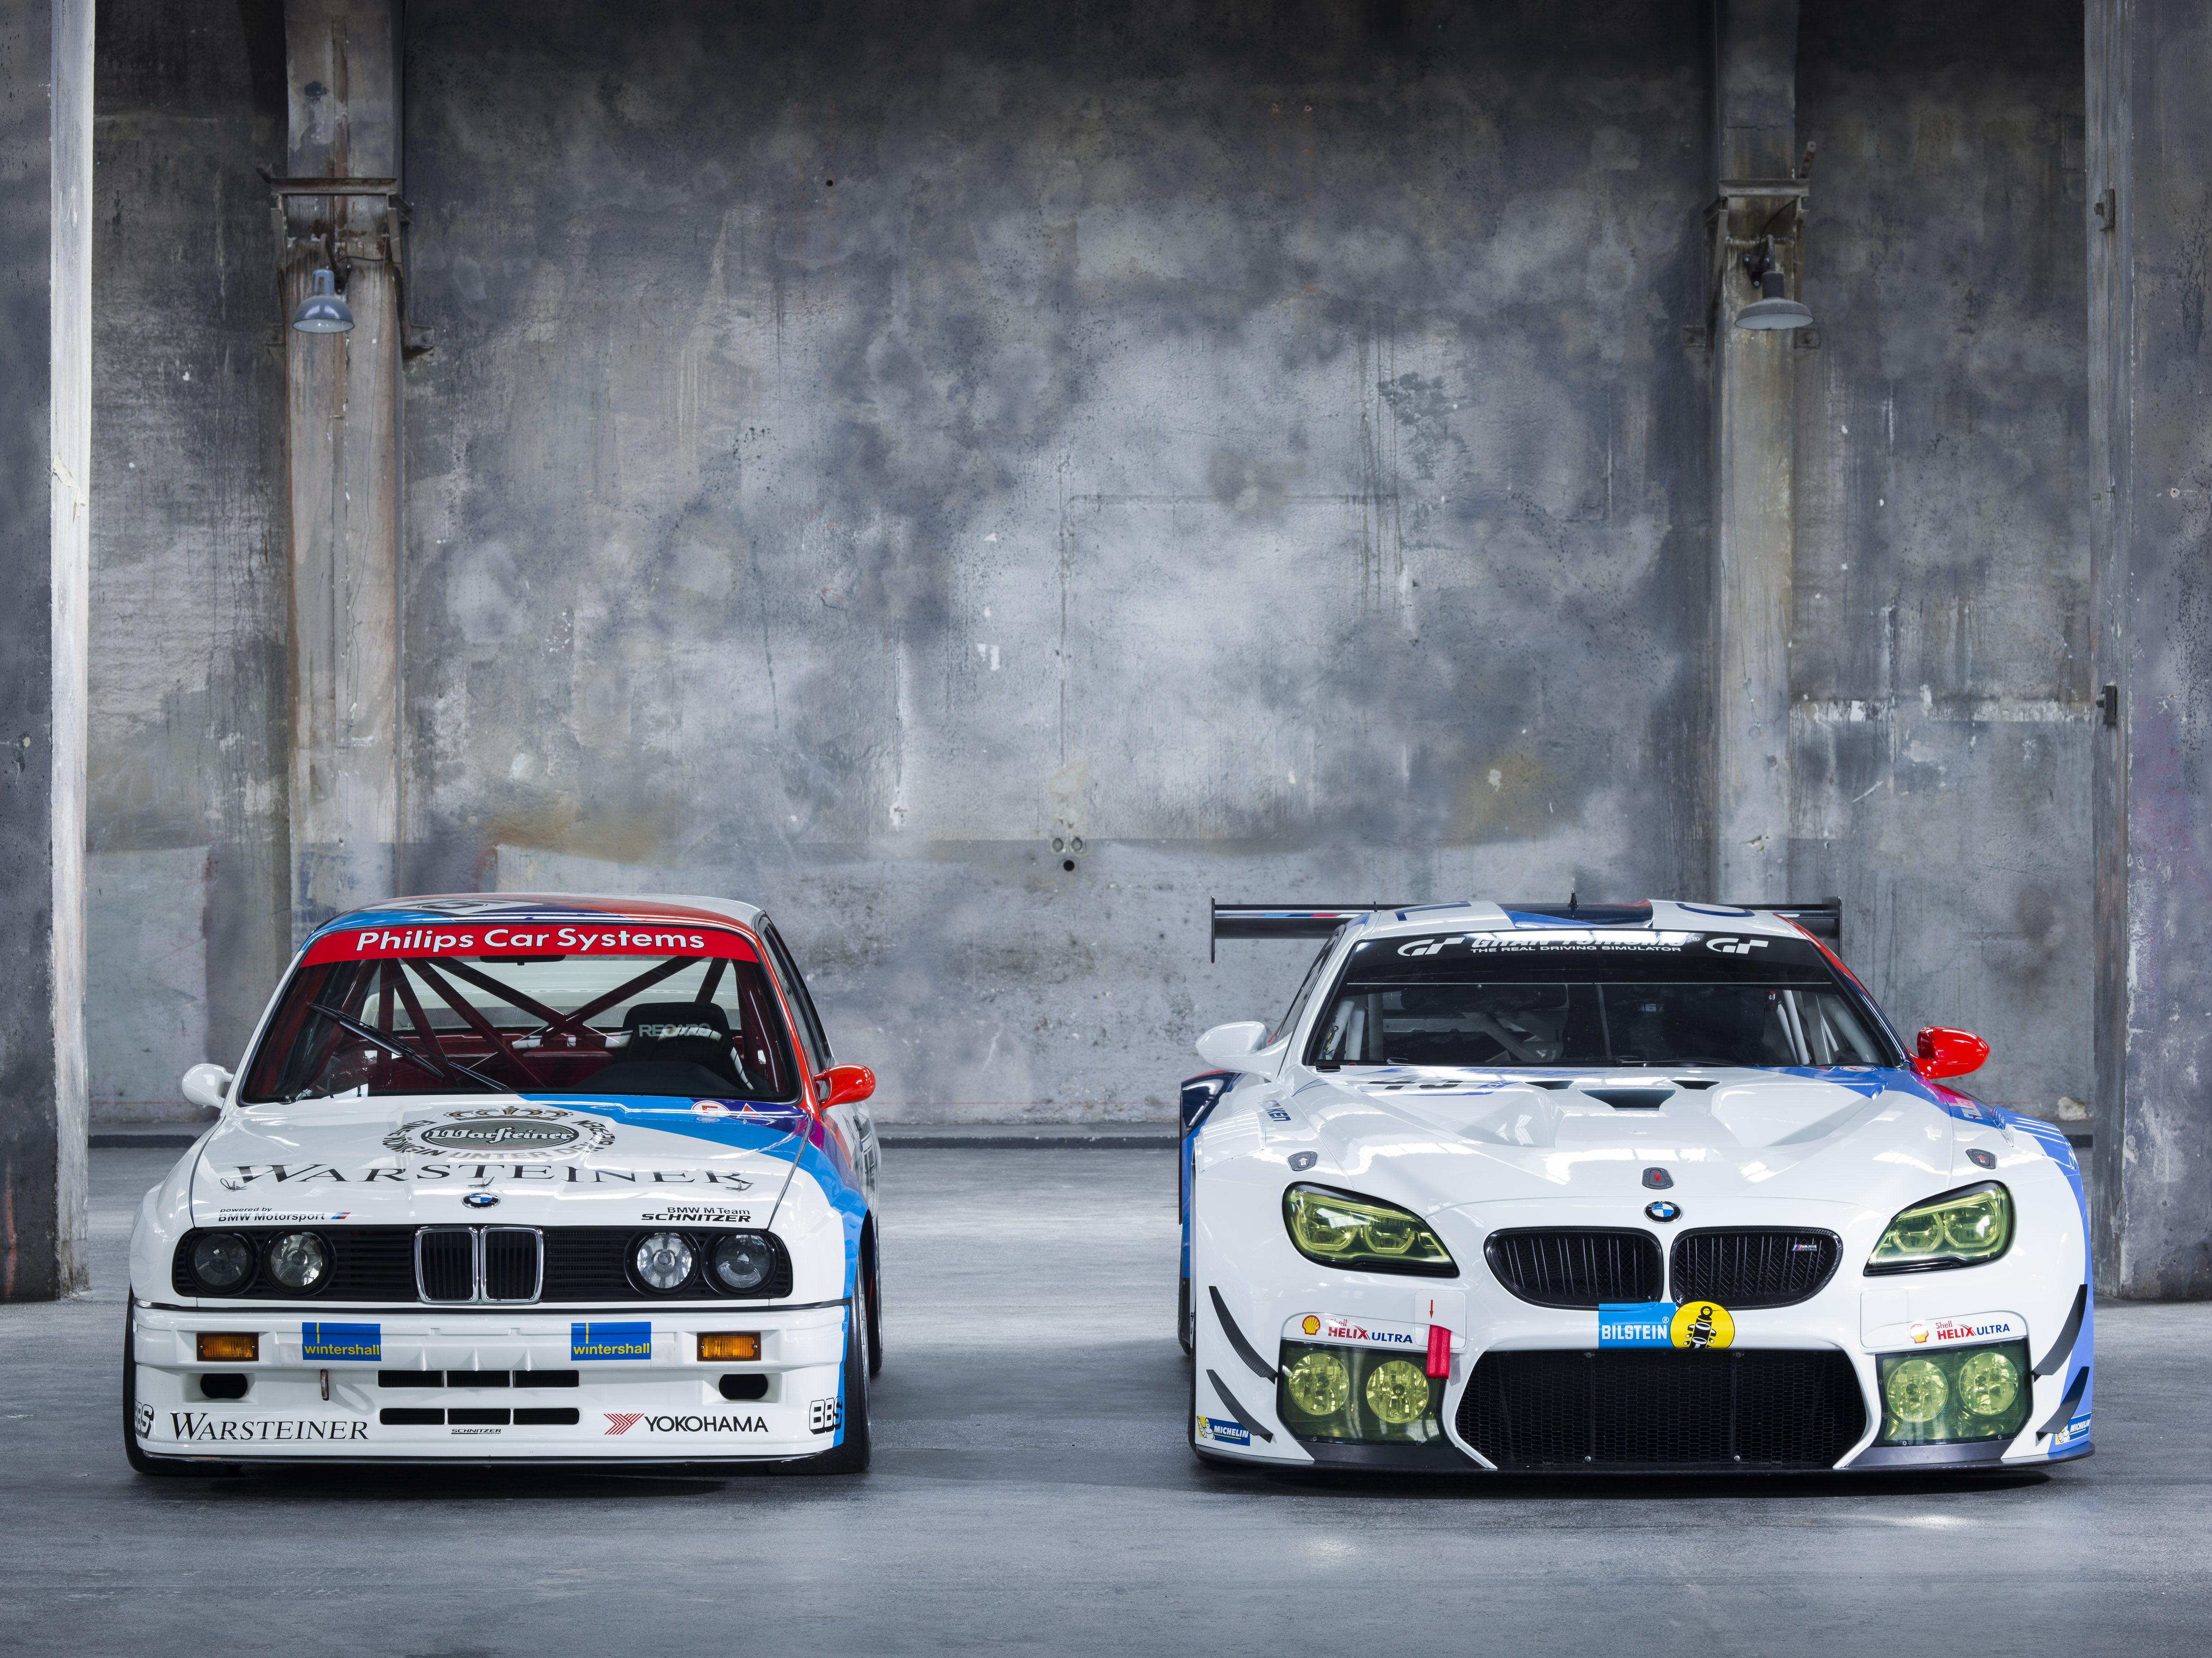 Bmw Team Schnitzer To Race On Nurburgring With Historic E30 M3 Livery